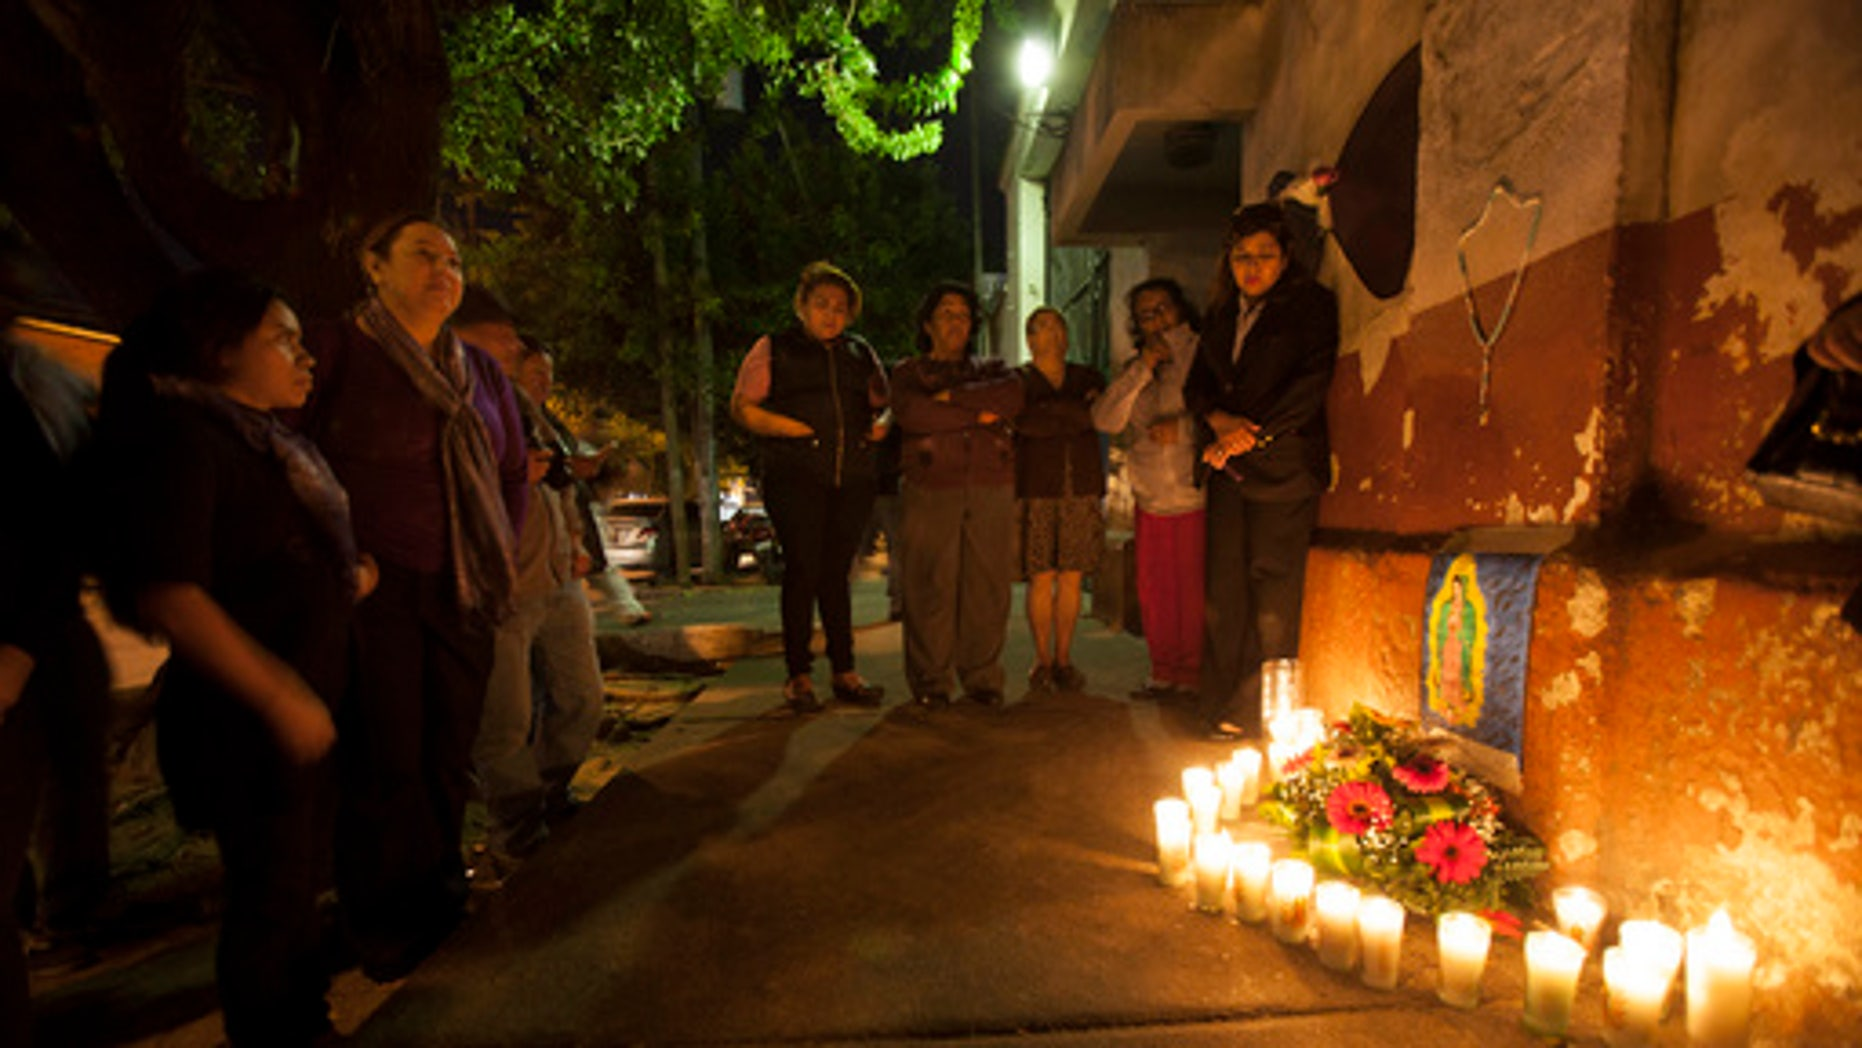 People hold a candlelight vigil in remembrance of the victims of a fire at a children's shelter, outside the morgue where the bodies are being identified in Guatemala City, Wednesday, March 8, 2017.